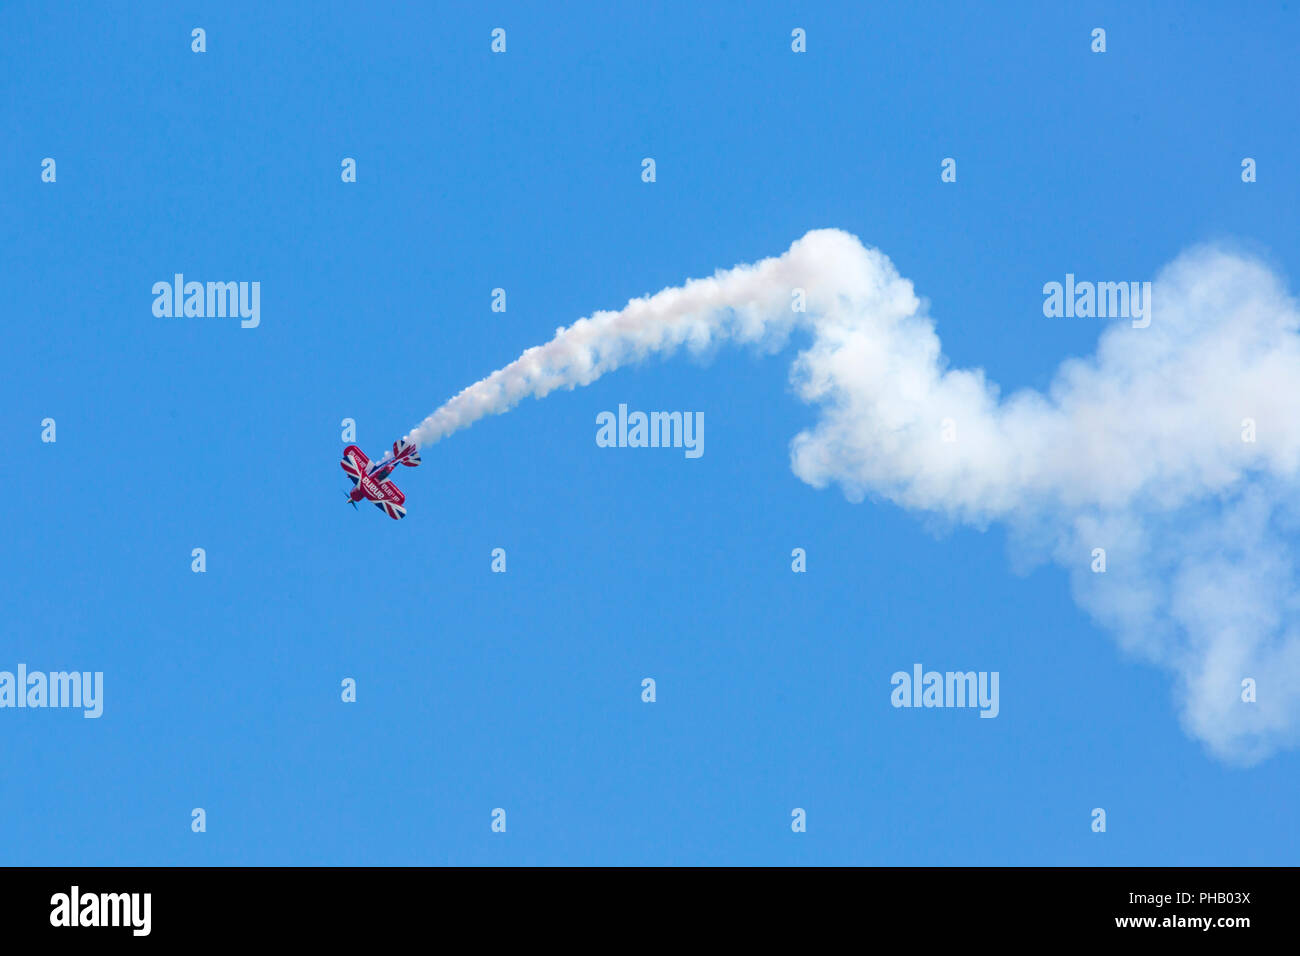 Bournemouth, UK. 31st August 2018. Crowds flock to Bournemouth for the 2nd day of the 11th annual Bournemouth Air Festival. Rich Goodwin thrills the crowds in his Super Pitts Muscle Plane. A first for Bournemouth Air Festival, pilot Rich Goodwin showcases the Muscle Biplane Pitts SaS G-EWIZ combining aerial manoeuvres and high energy muscle biplane. Credit: Carolyn Jenkins/Alamy Live News - Stock Image